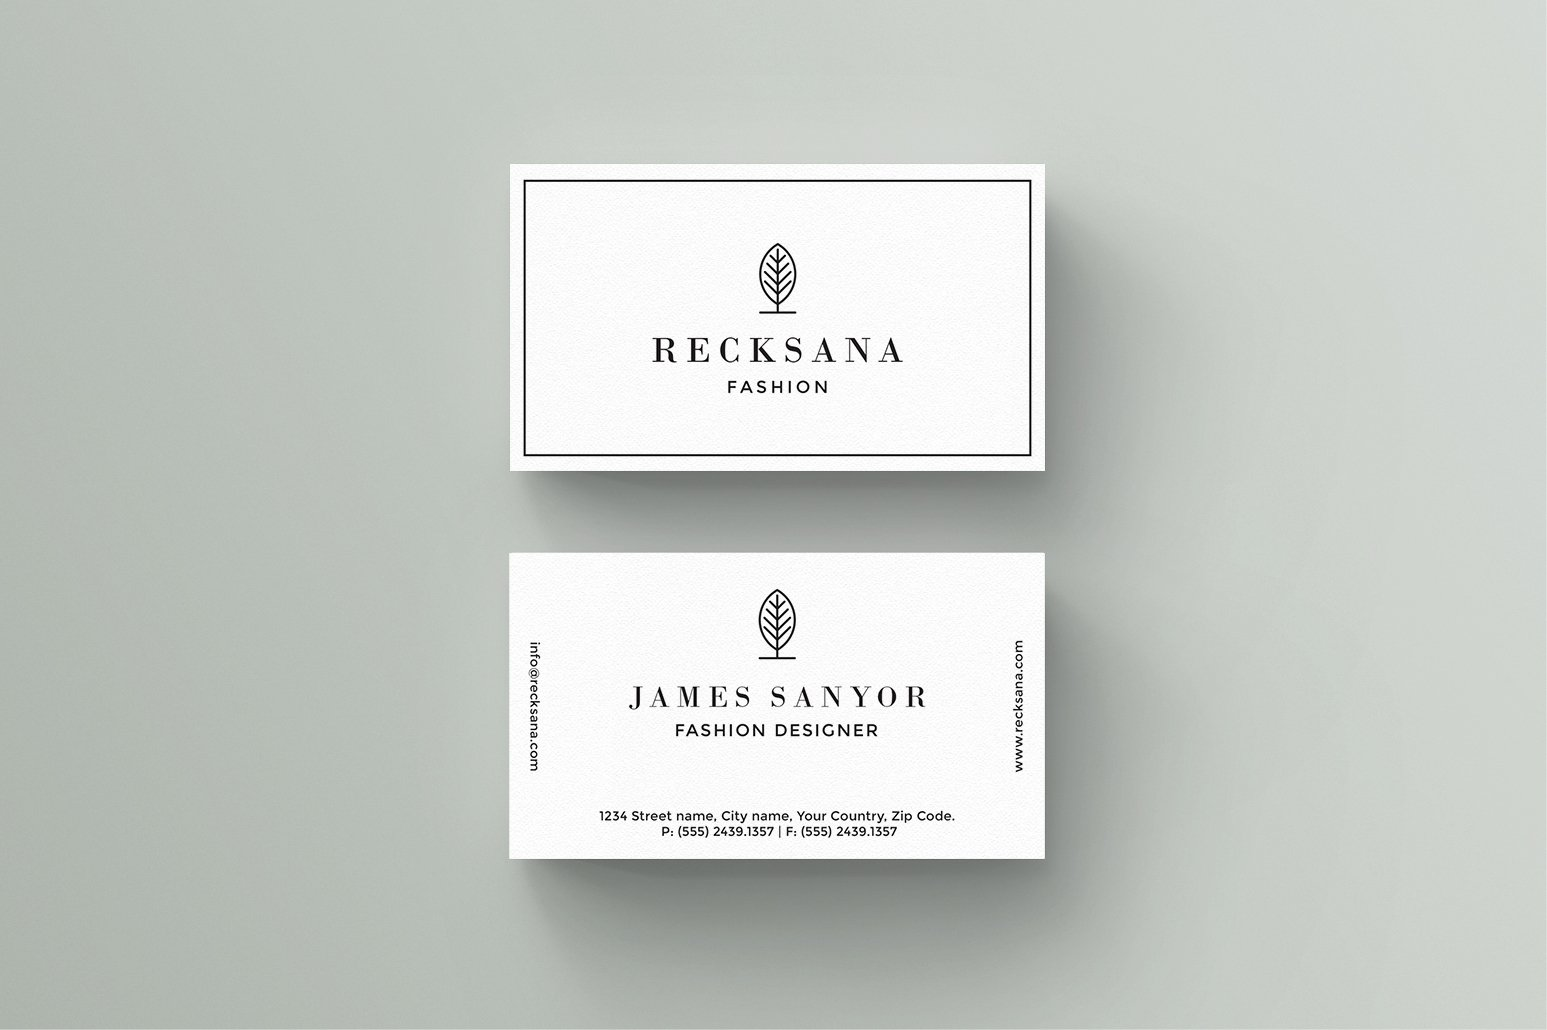 J u n i p e r business card template business card templates recksana business card template fbccfo Gallery